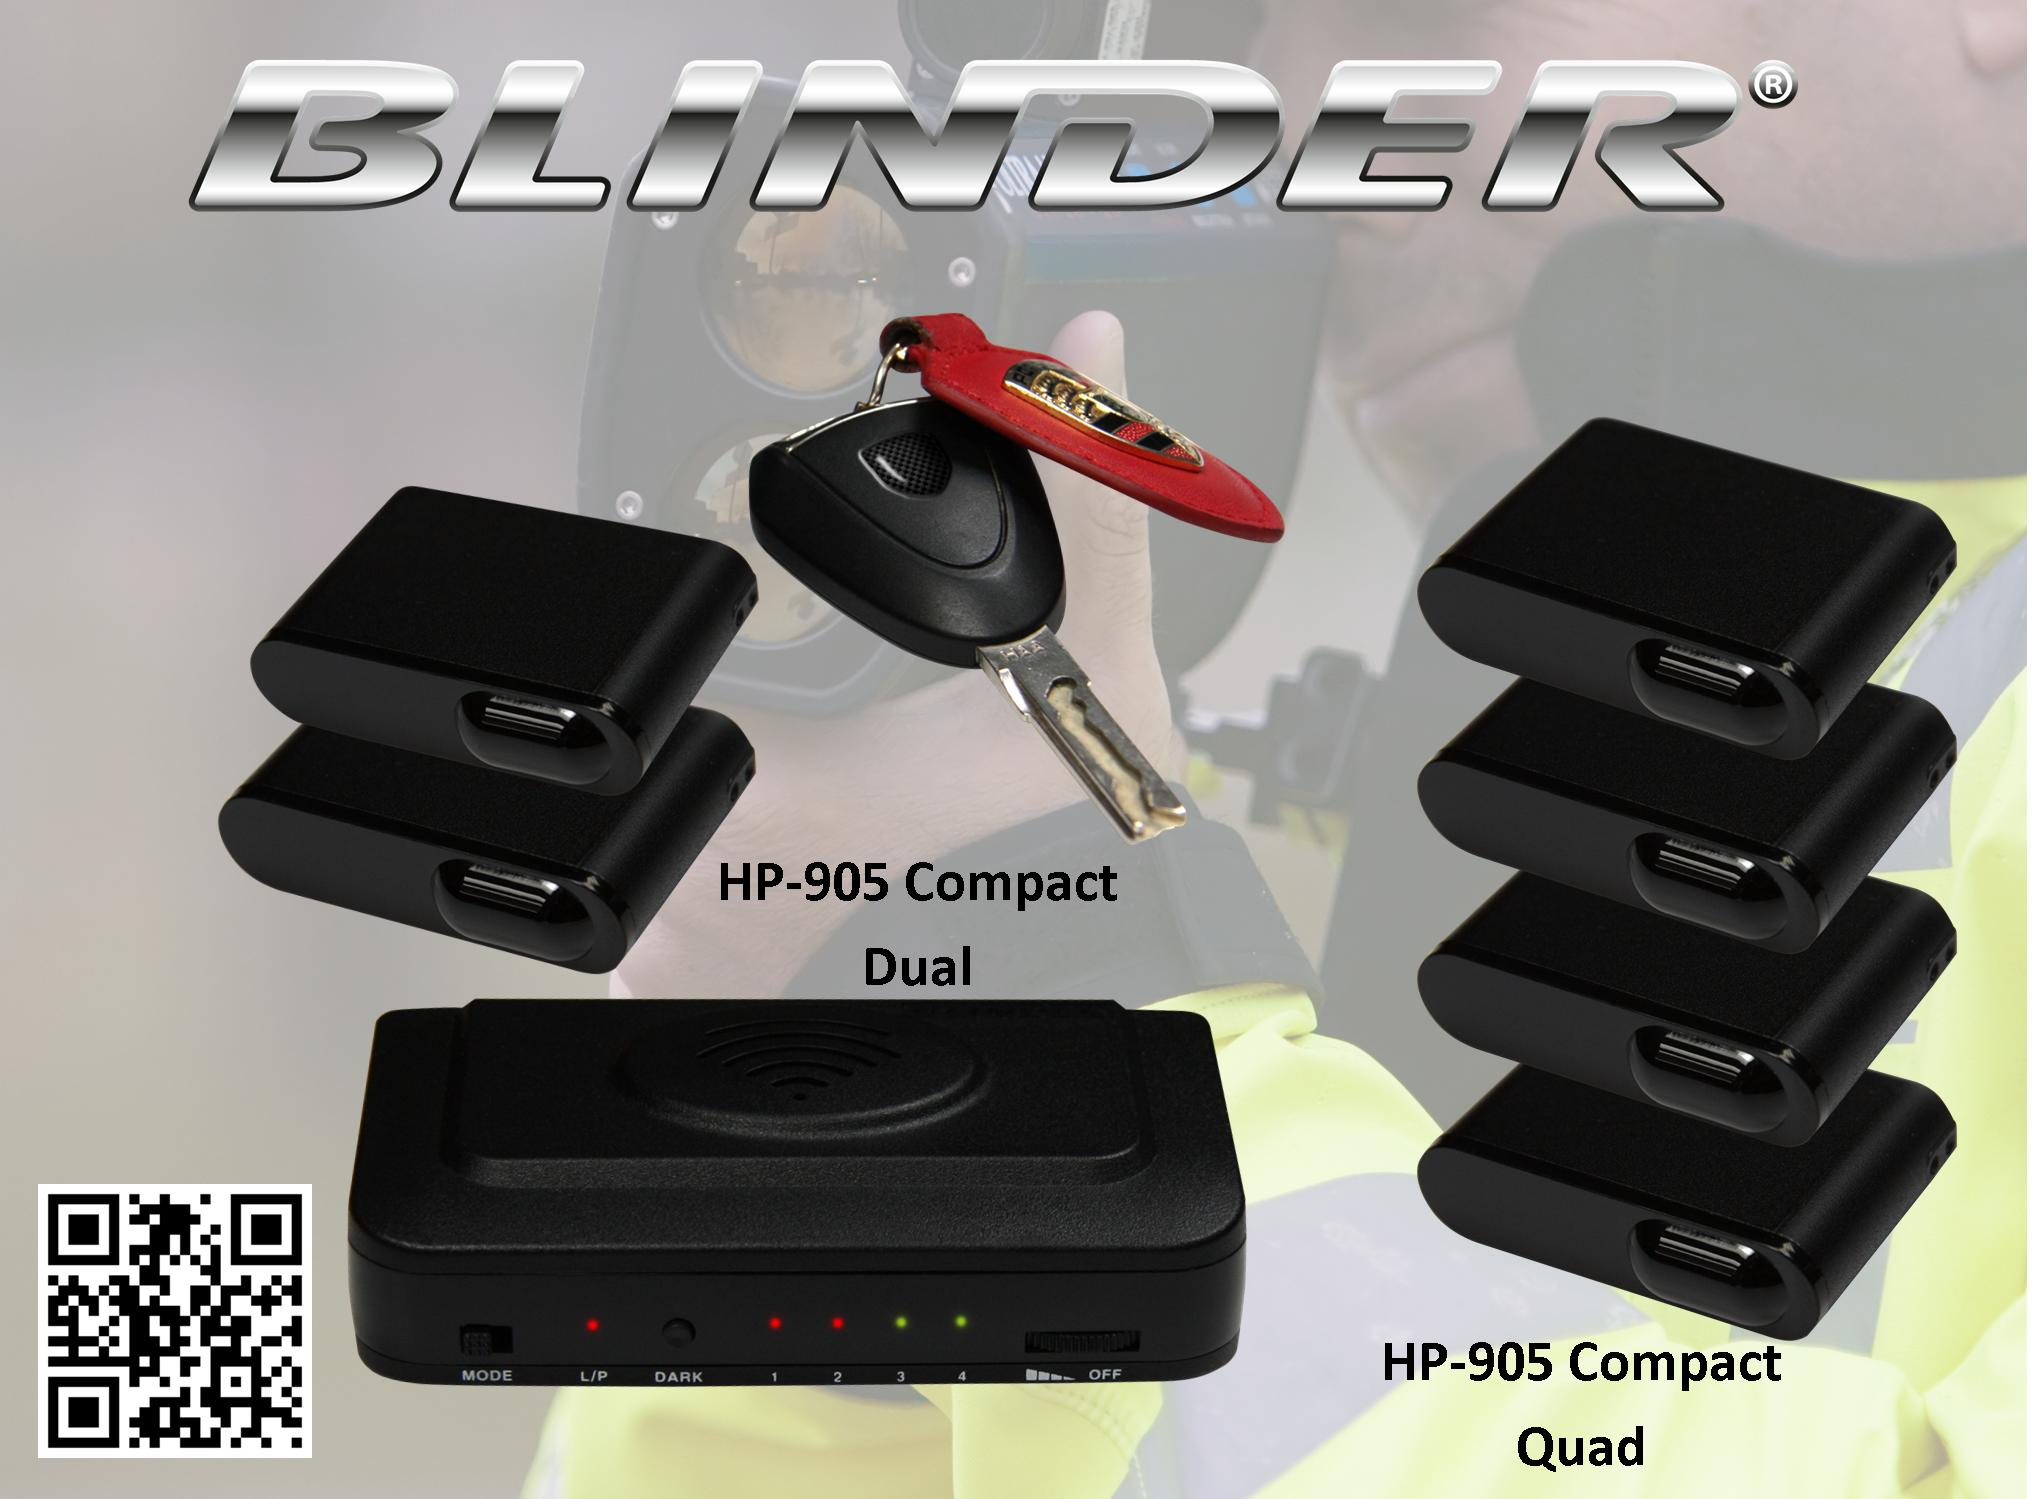 Blinder Announces New Model HP-905 Compact Family